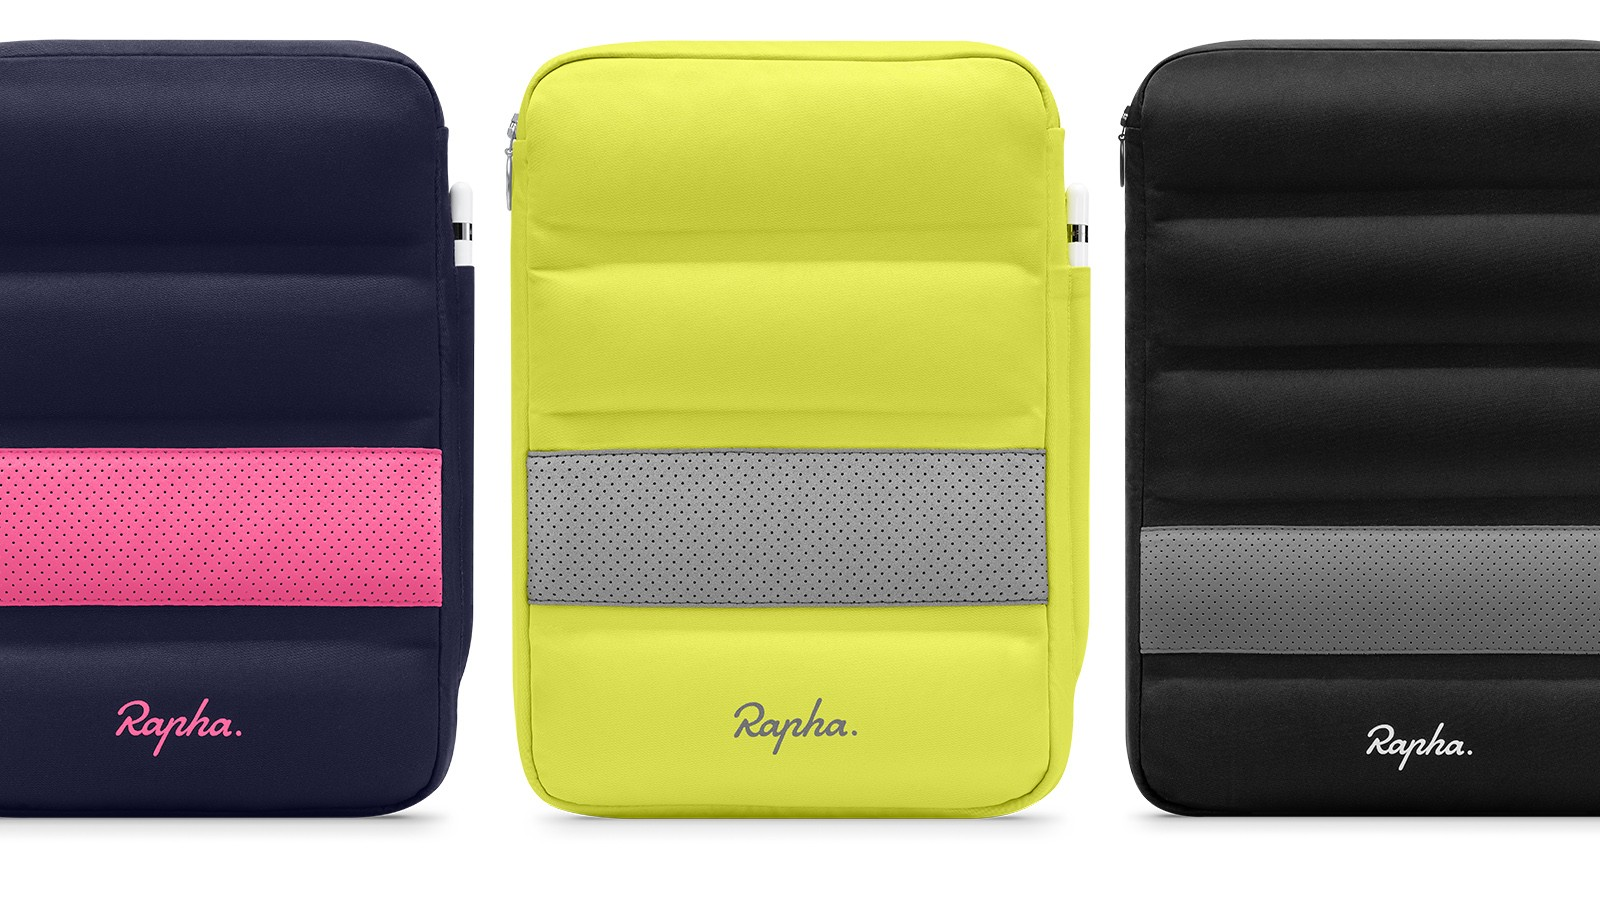 Rapha has protective sleeves for iPads and MacBooks in various sizes